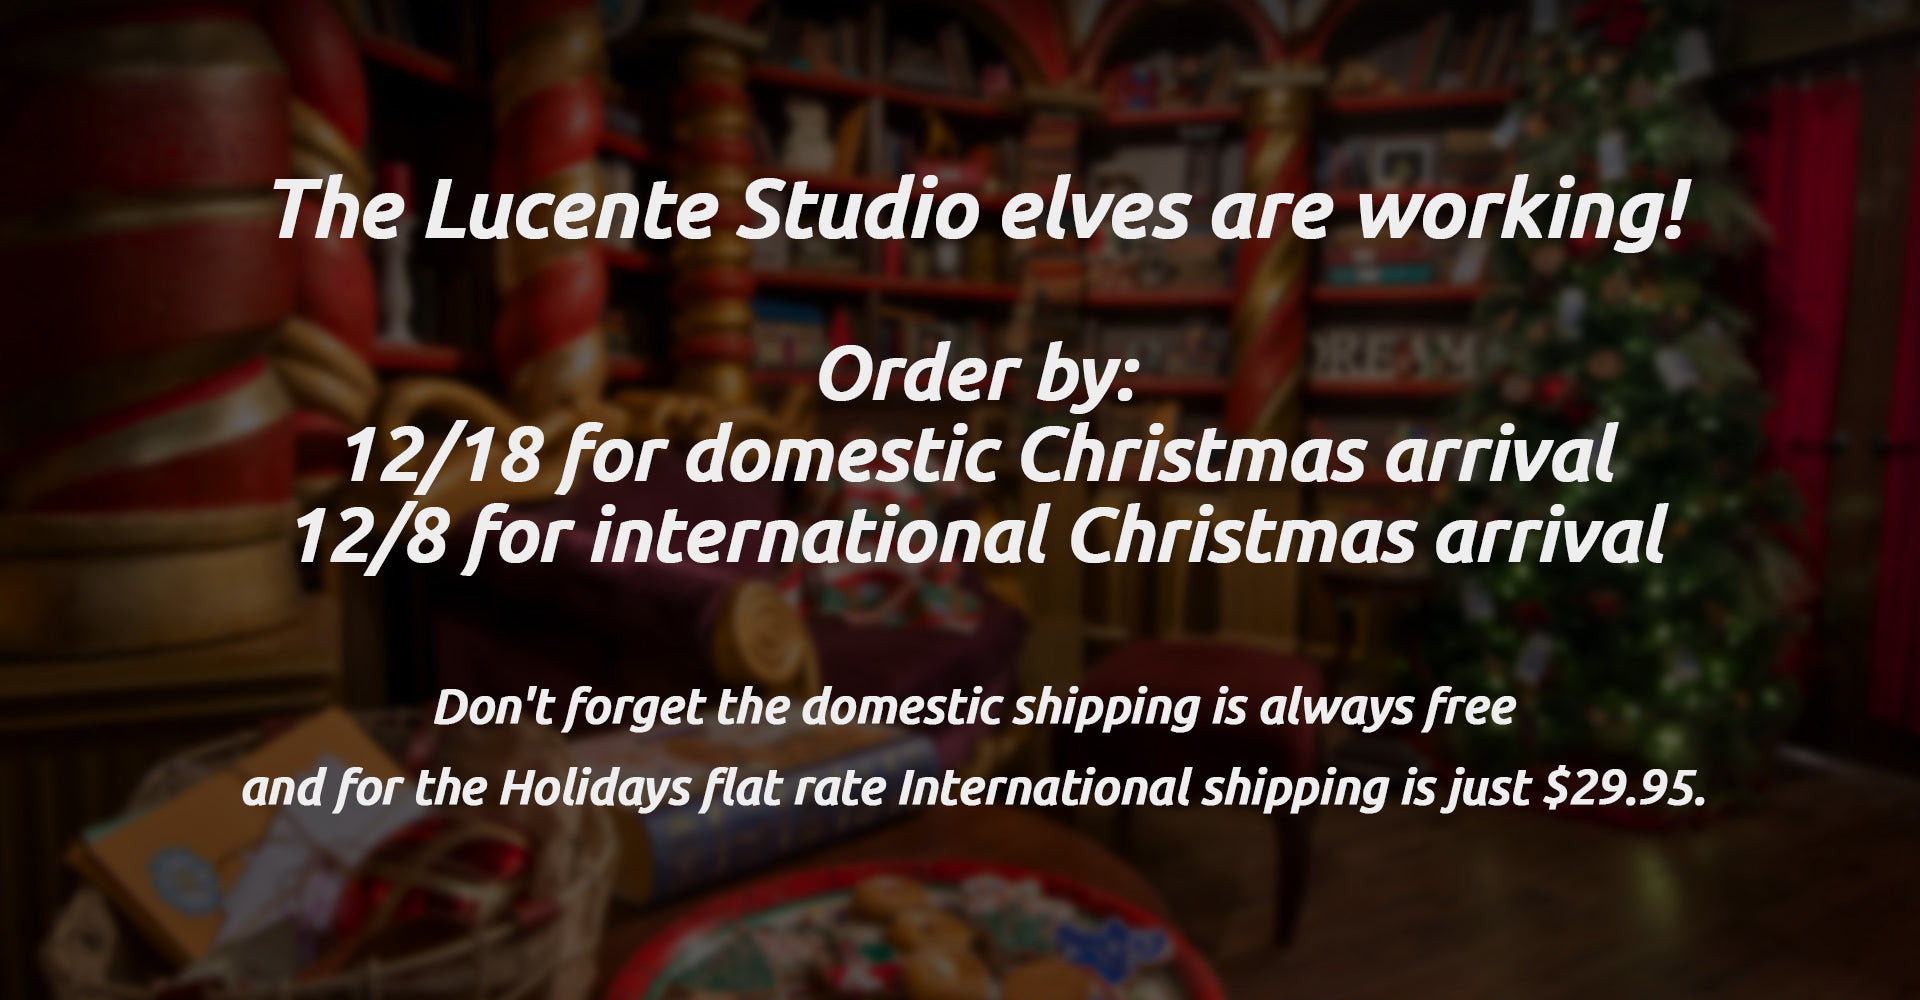 The Lucente Studio elves are working!